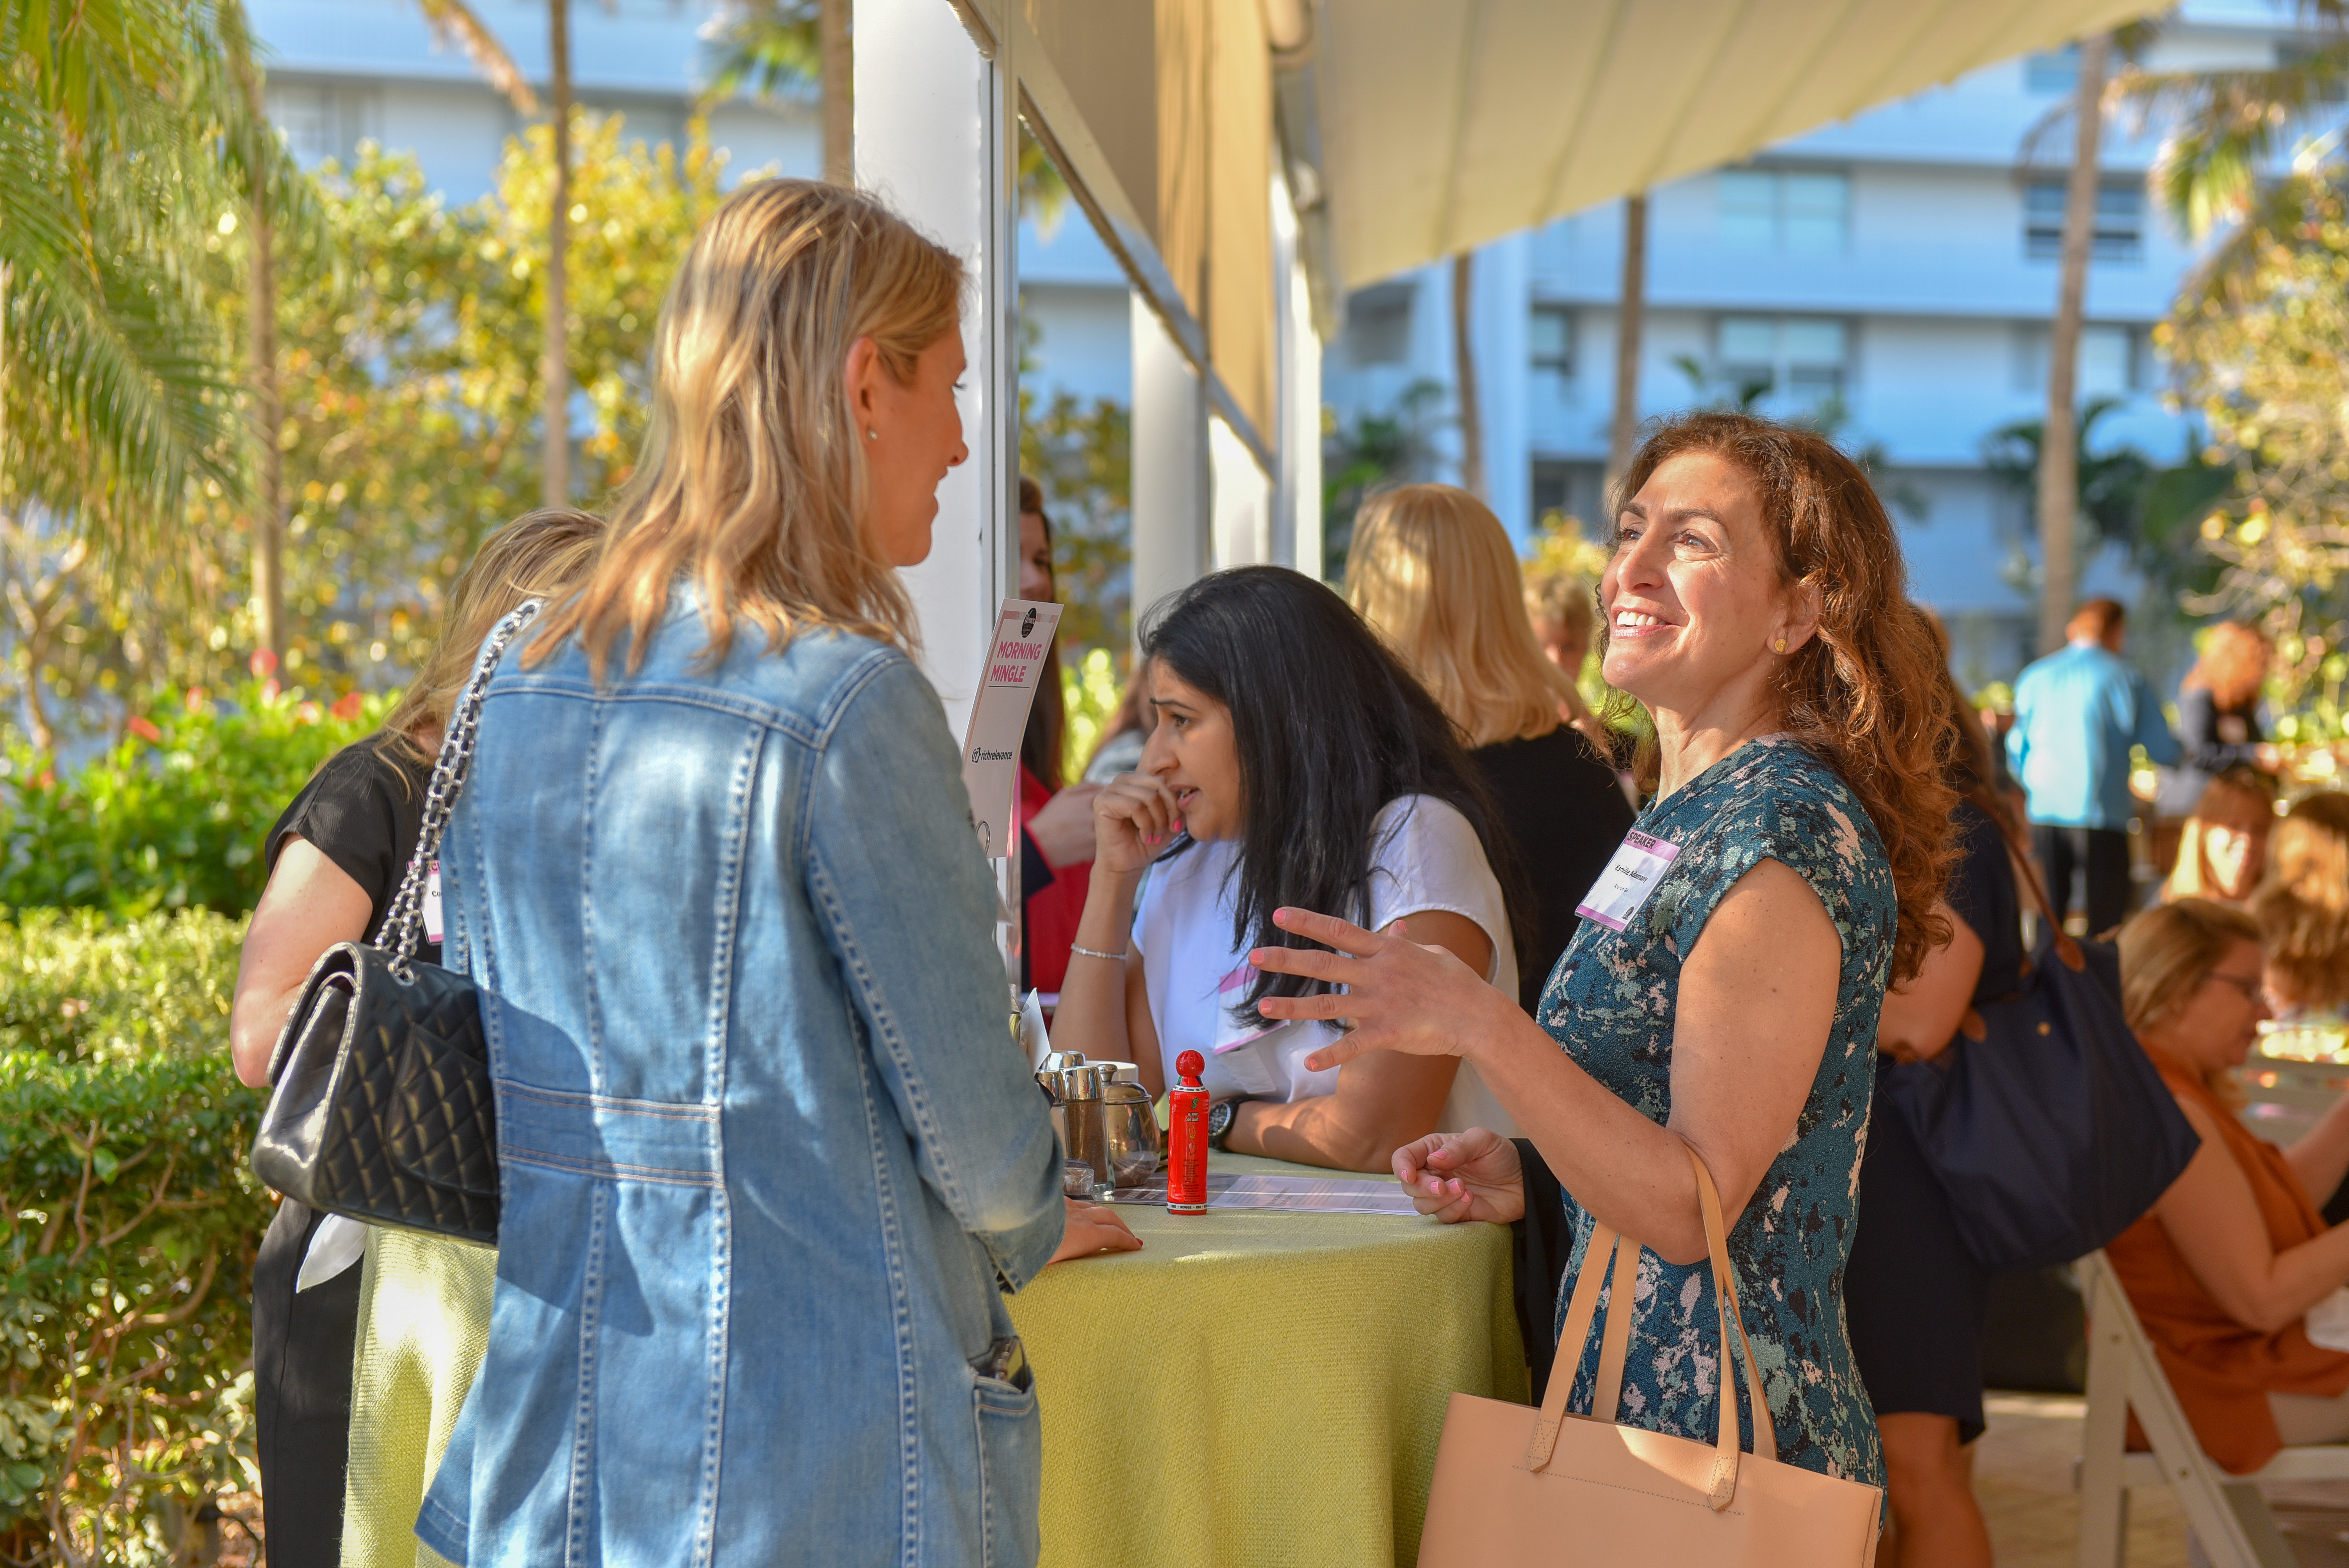 Scenes from the 2018 Women in Retail Leadership Summit